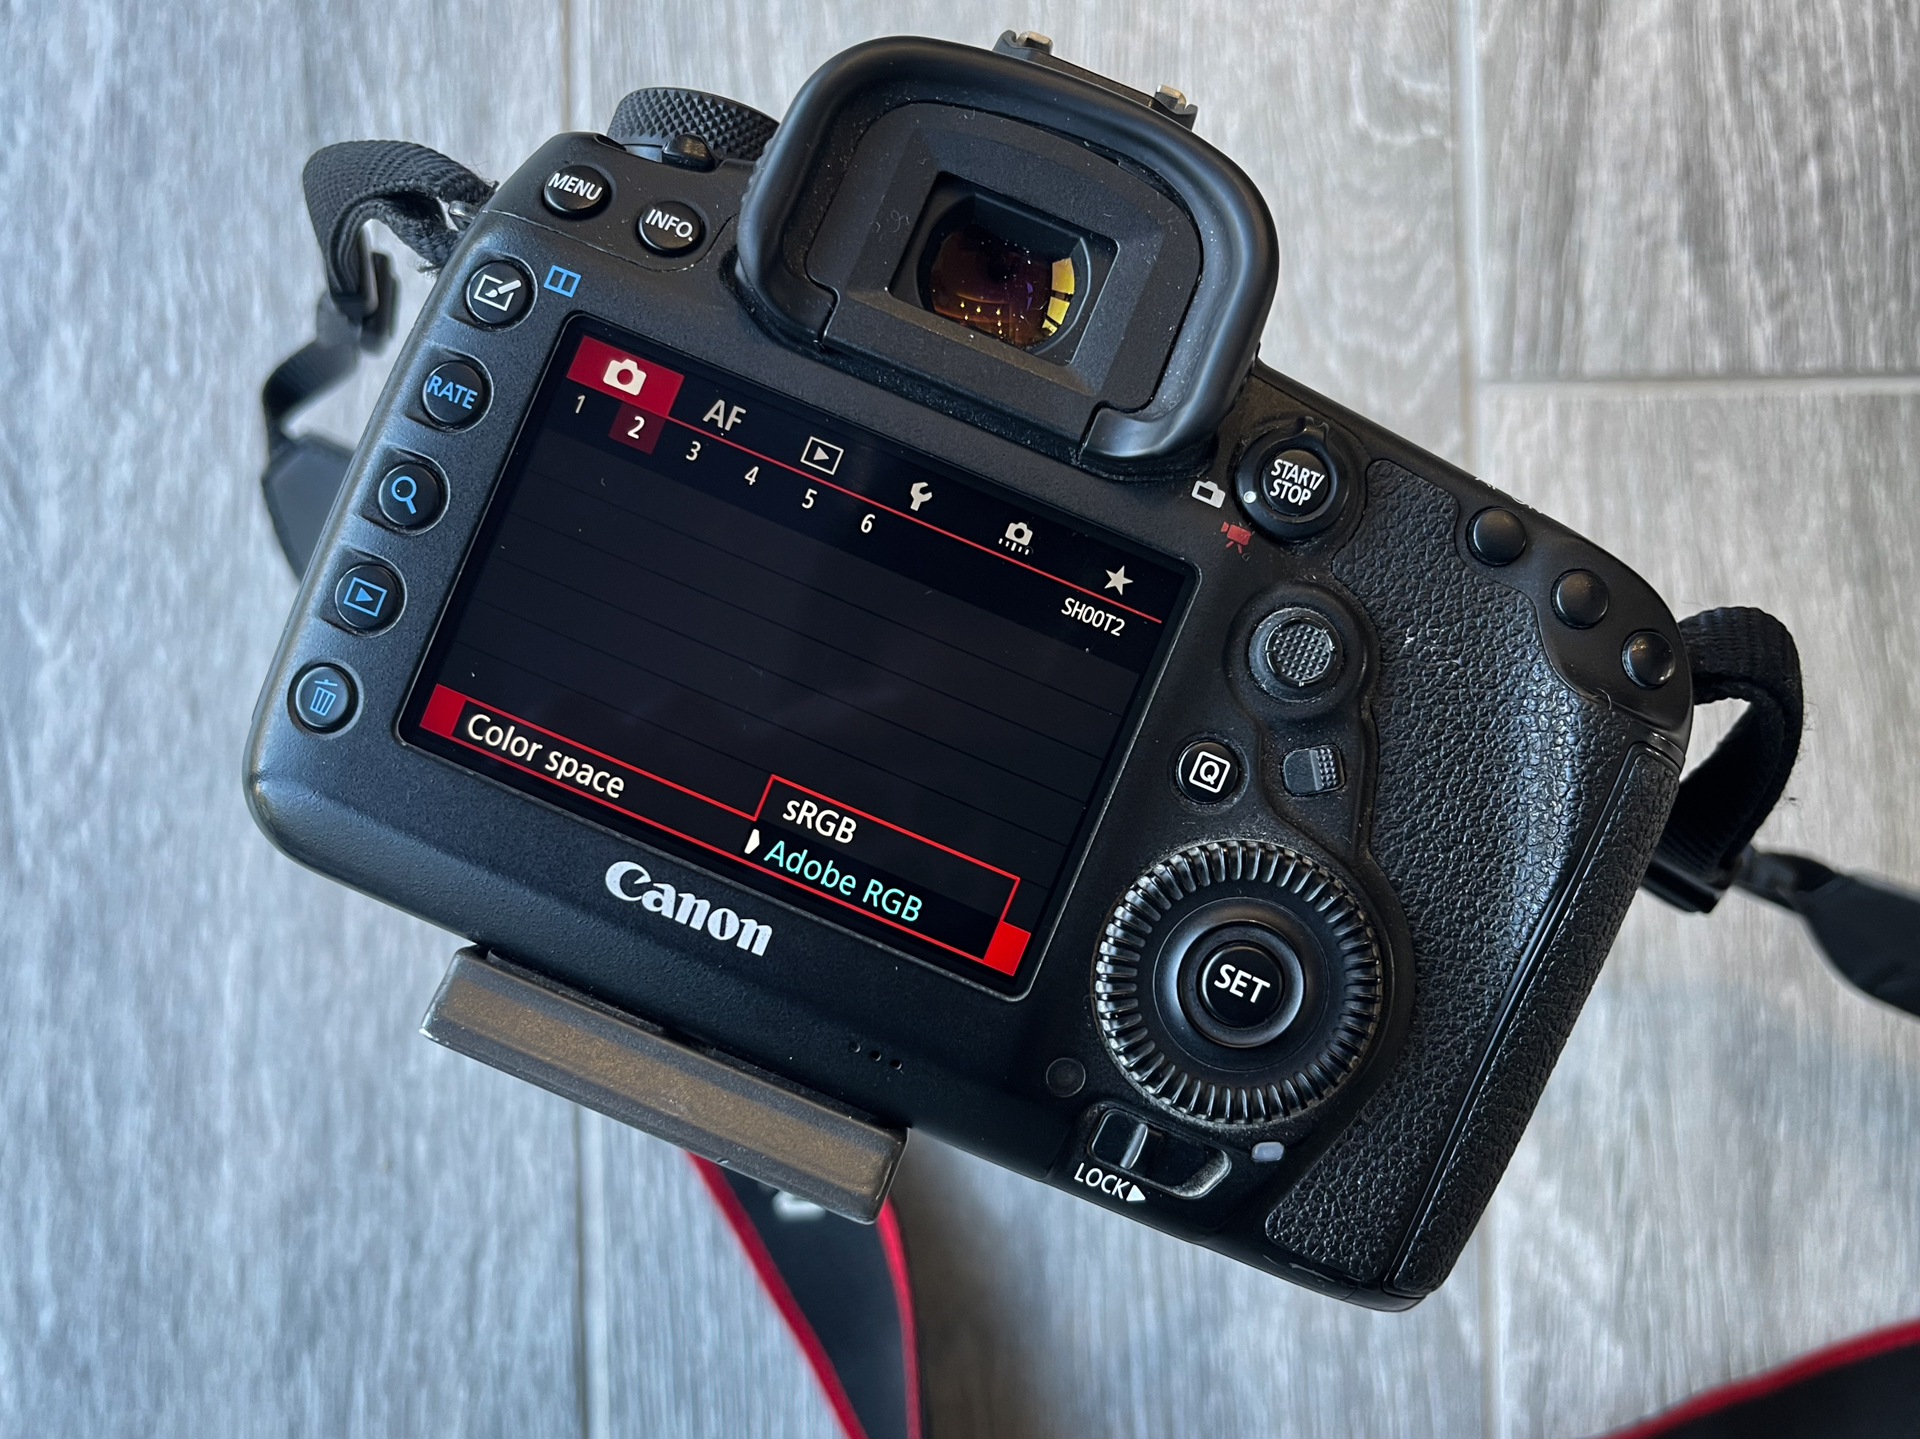 Viewing the color space options on the back of a DSLR LCD screen